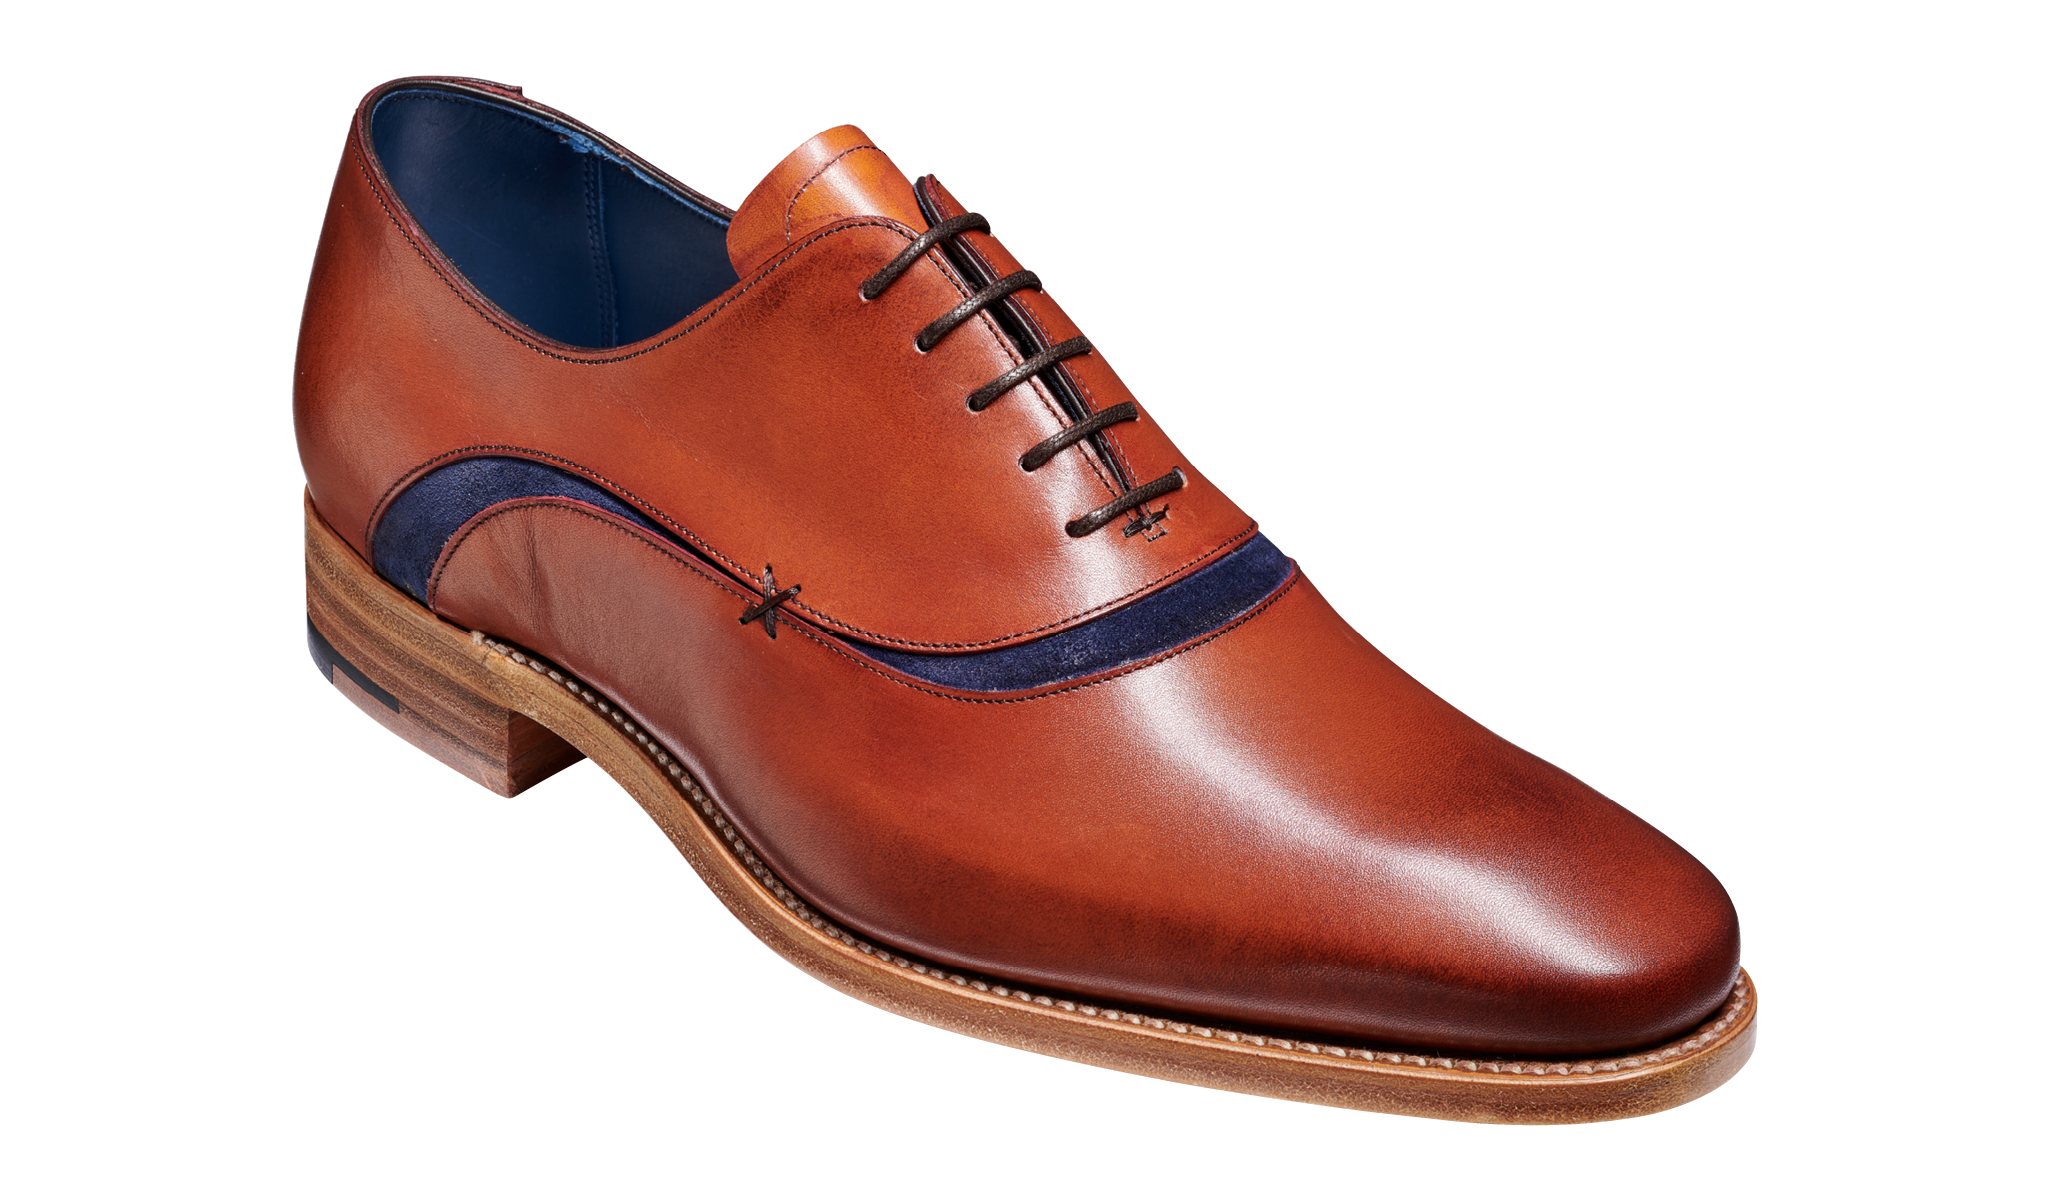 Emerson - A men's oxford shoe by Barker